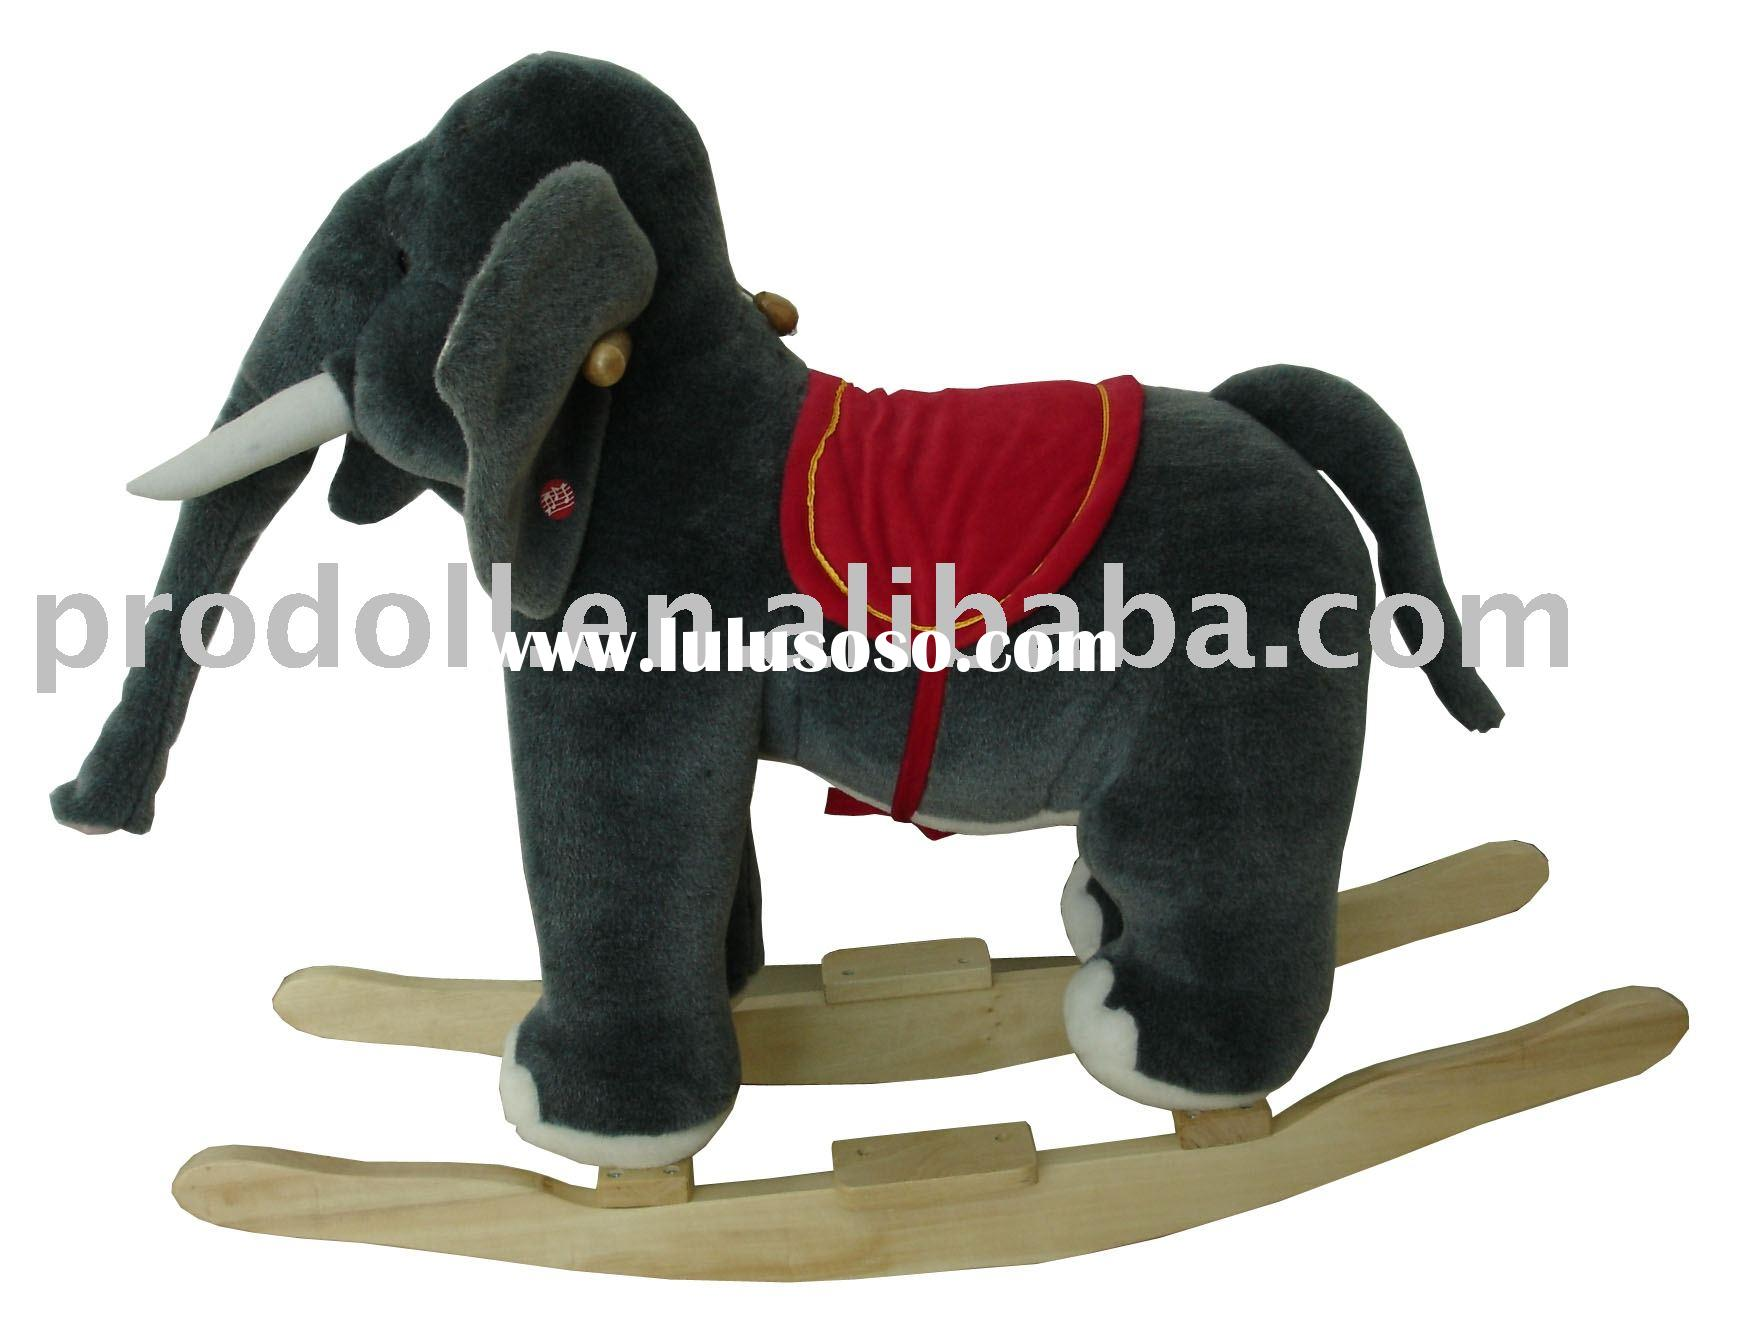 Rocking elephant,Plush Rocking Horse,rocking horses,plush rocker,rocking animal